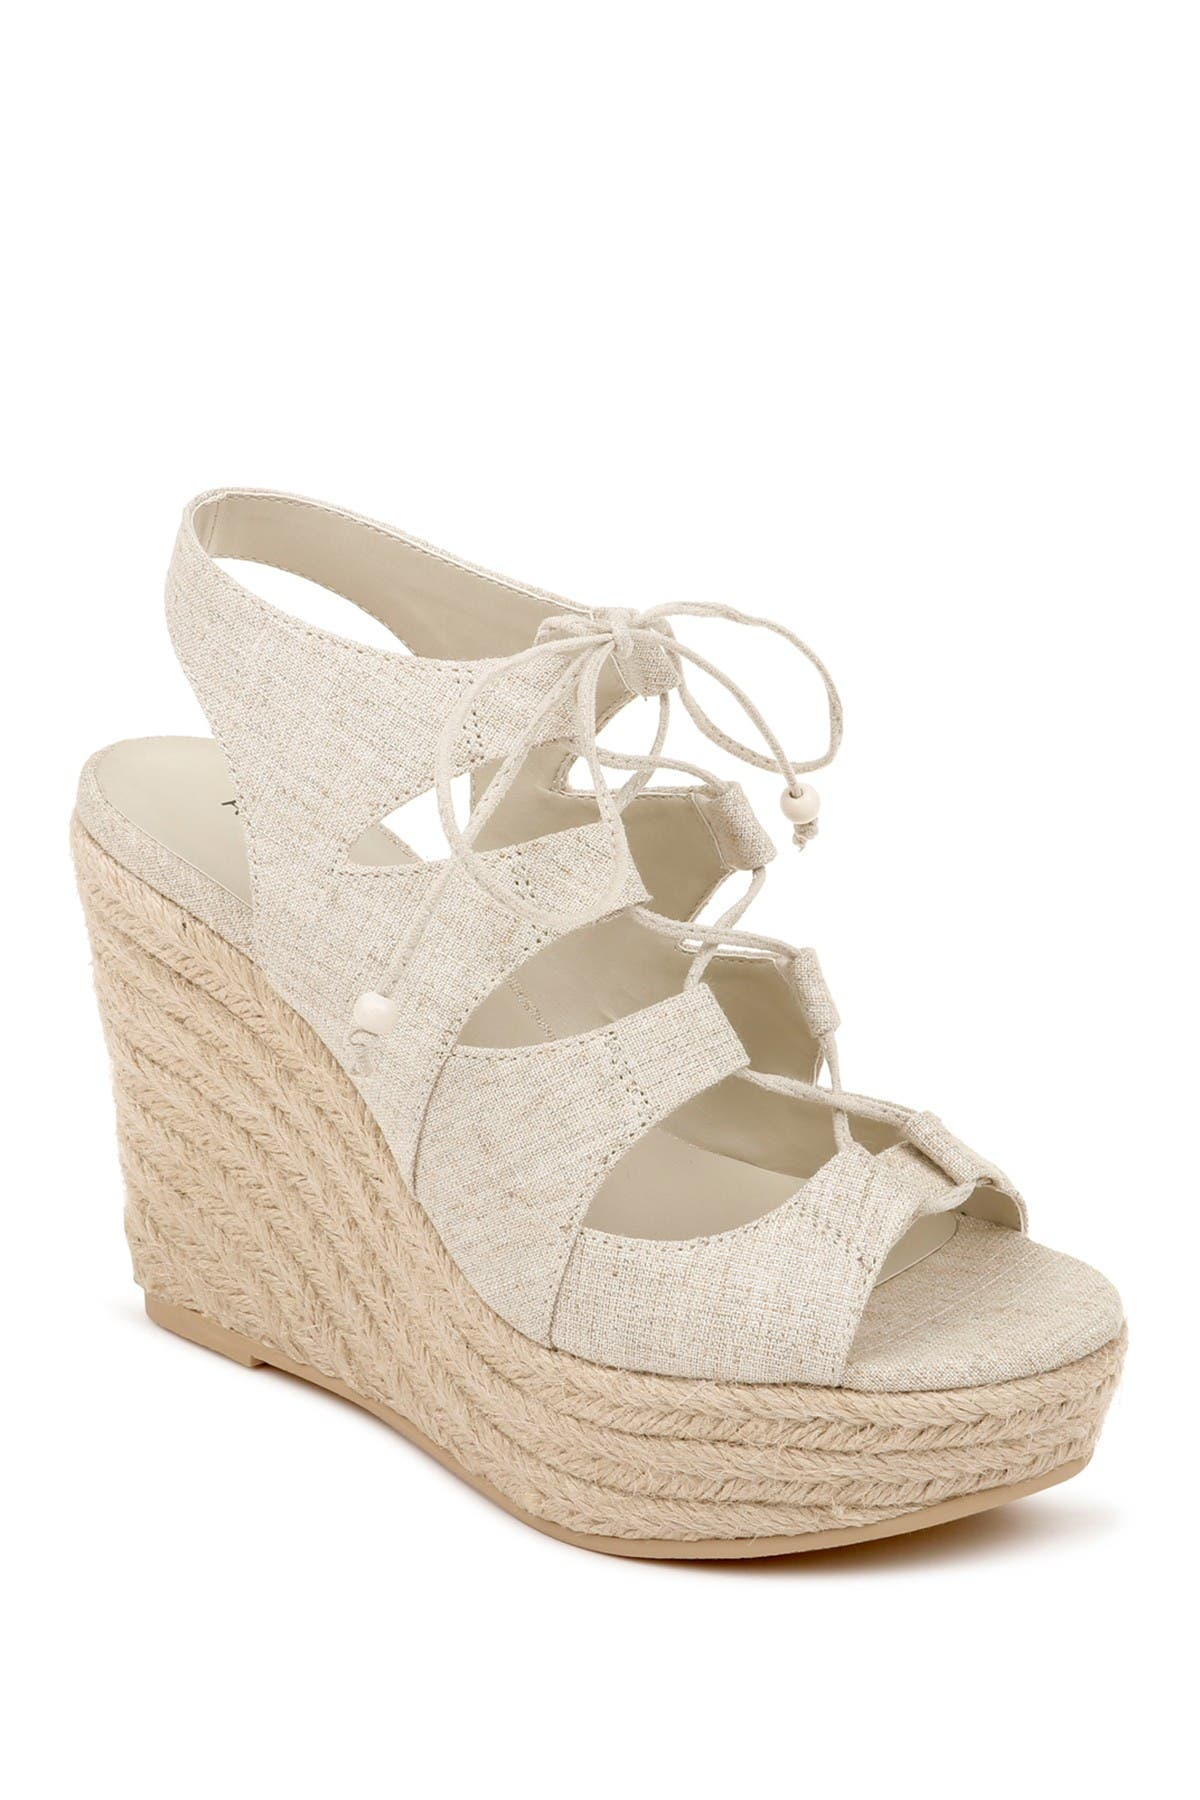 Image of Rampage Fina Ghillie Lace Espadrille Wedge